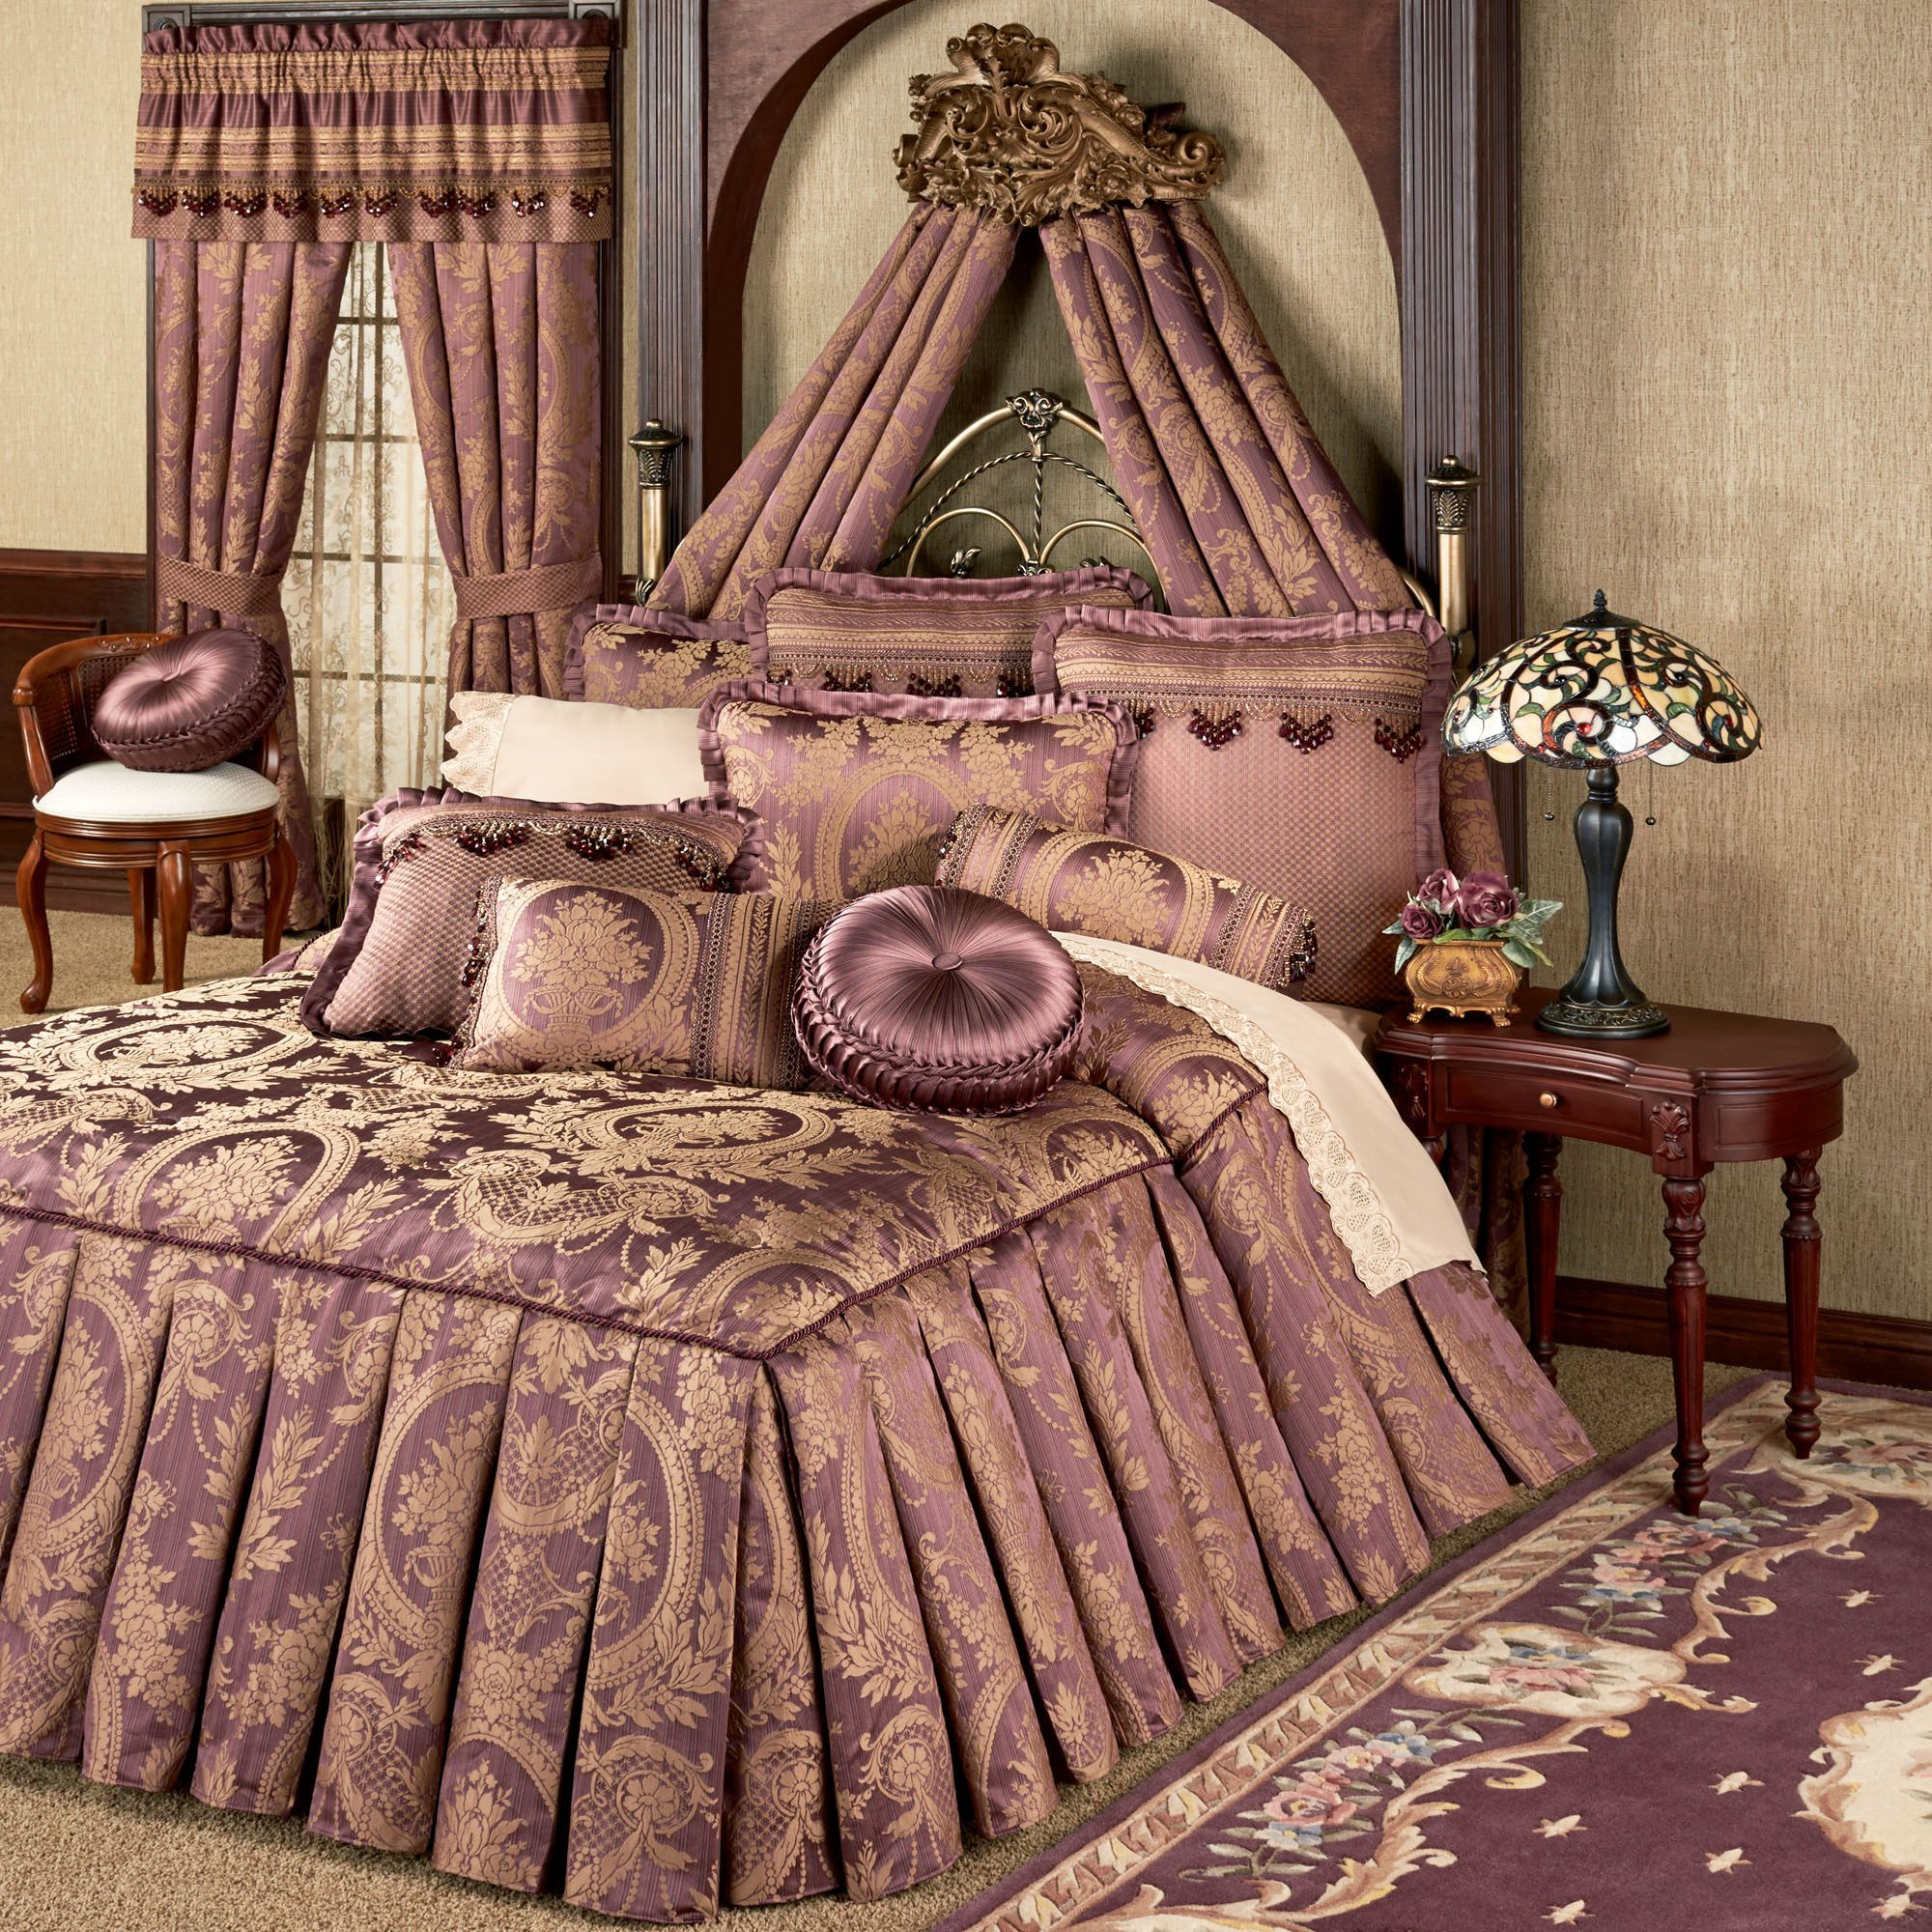 Josephine Tailored Oversized Queen Bedspread Bedding Elegant Bed Spreads Bed Linens Luxury Bed Spreads